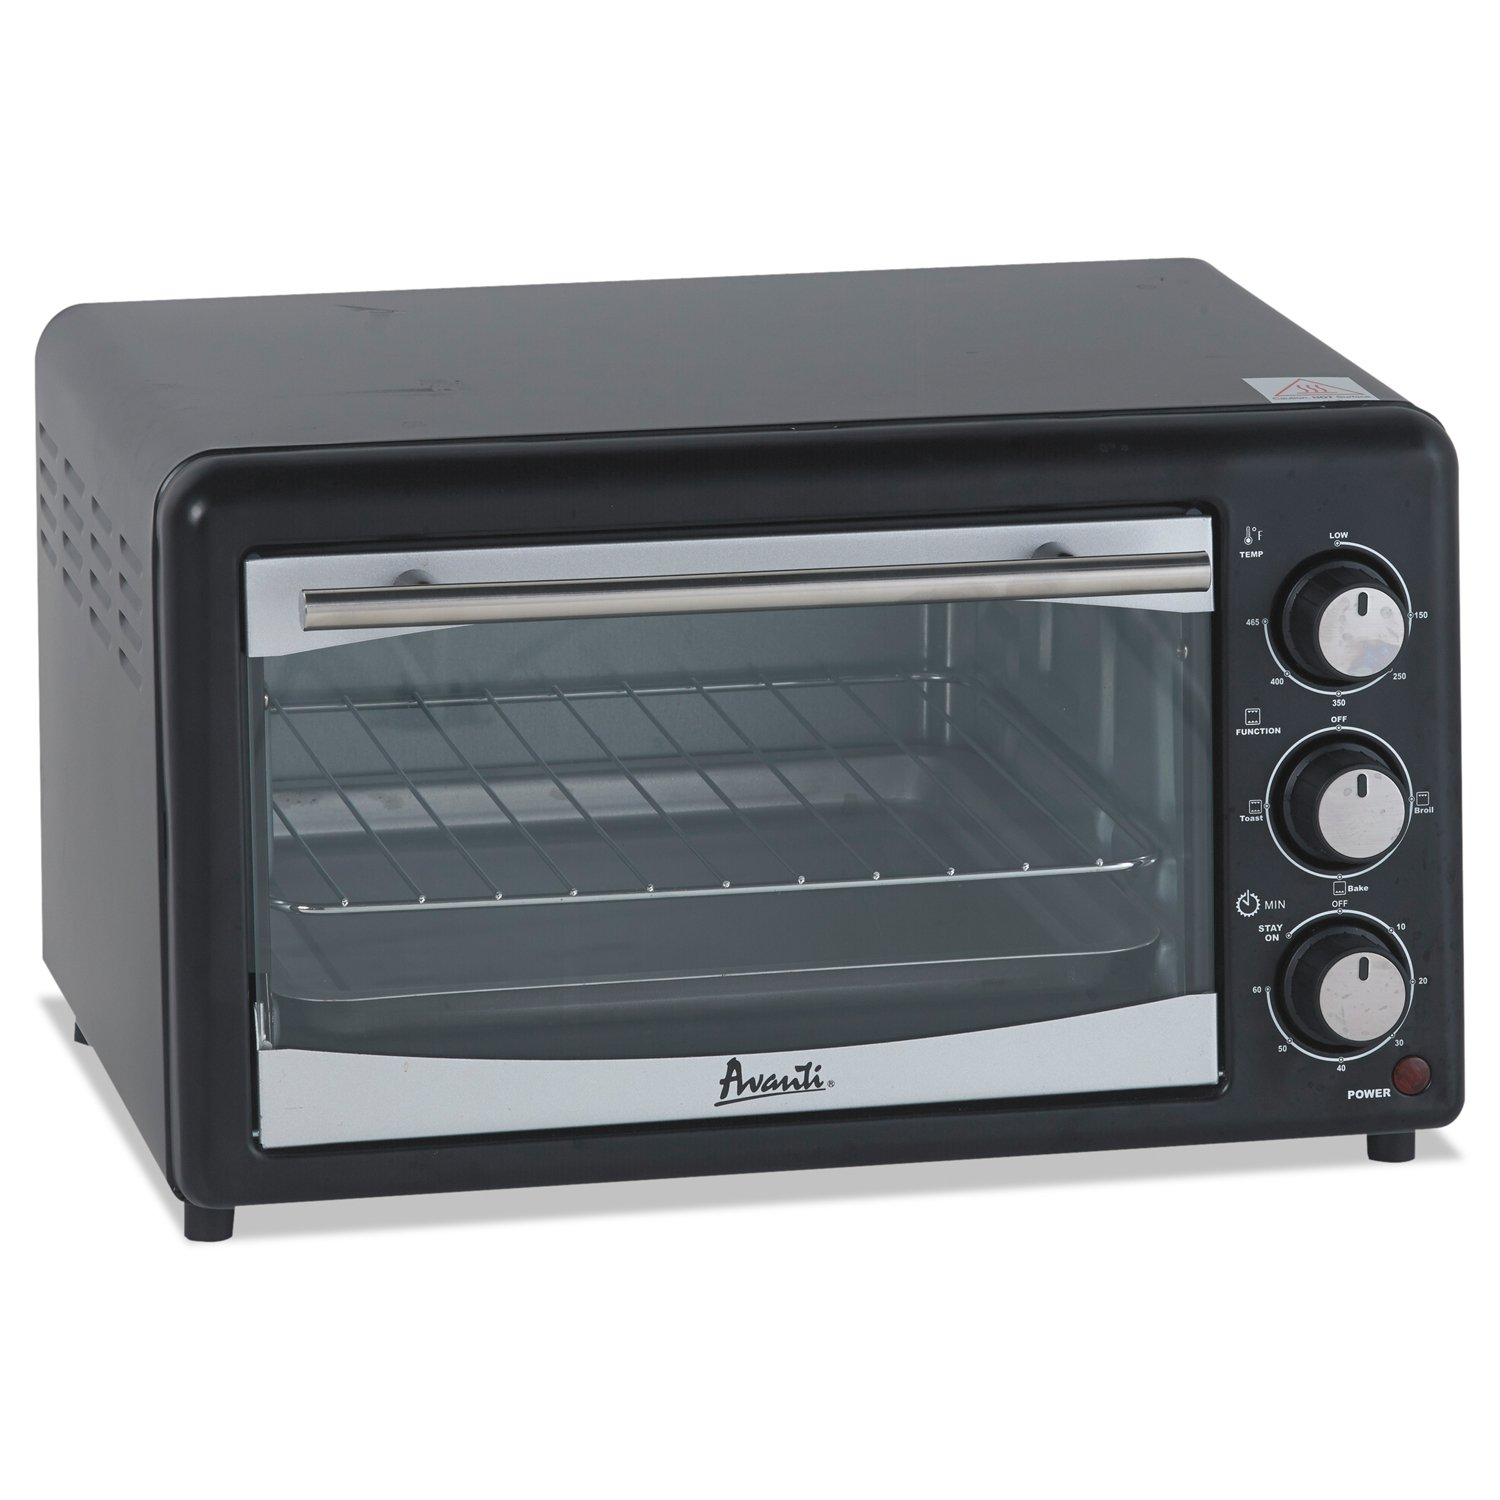 toa really have air produce some silver countertop customer for name they wow started the products com toaster company product such think when reviews amazon quality you poor a hear cuisinart to oven fryer